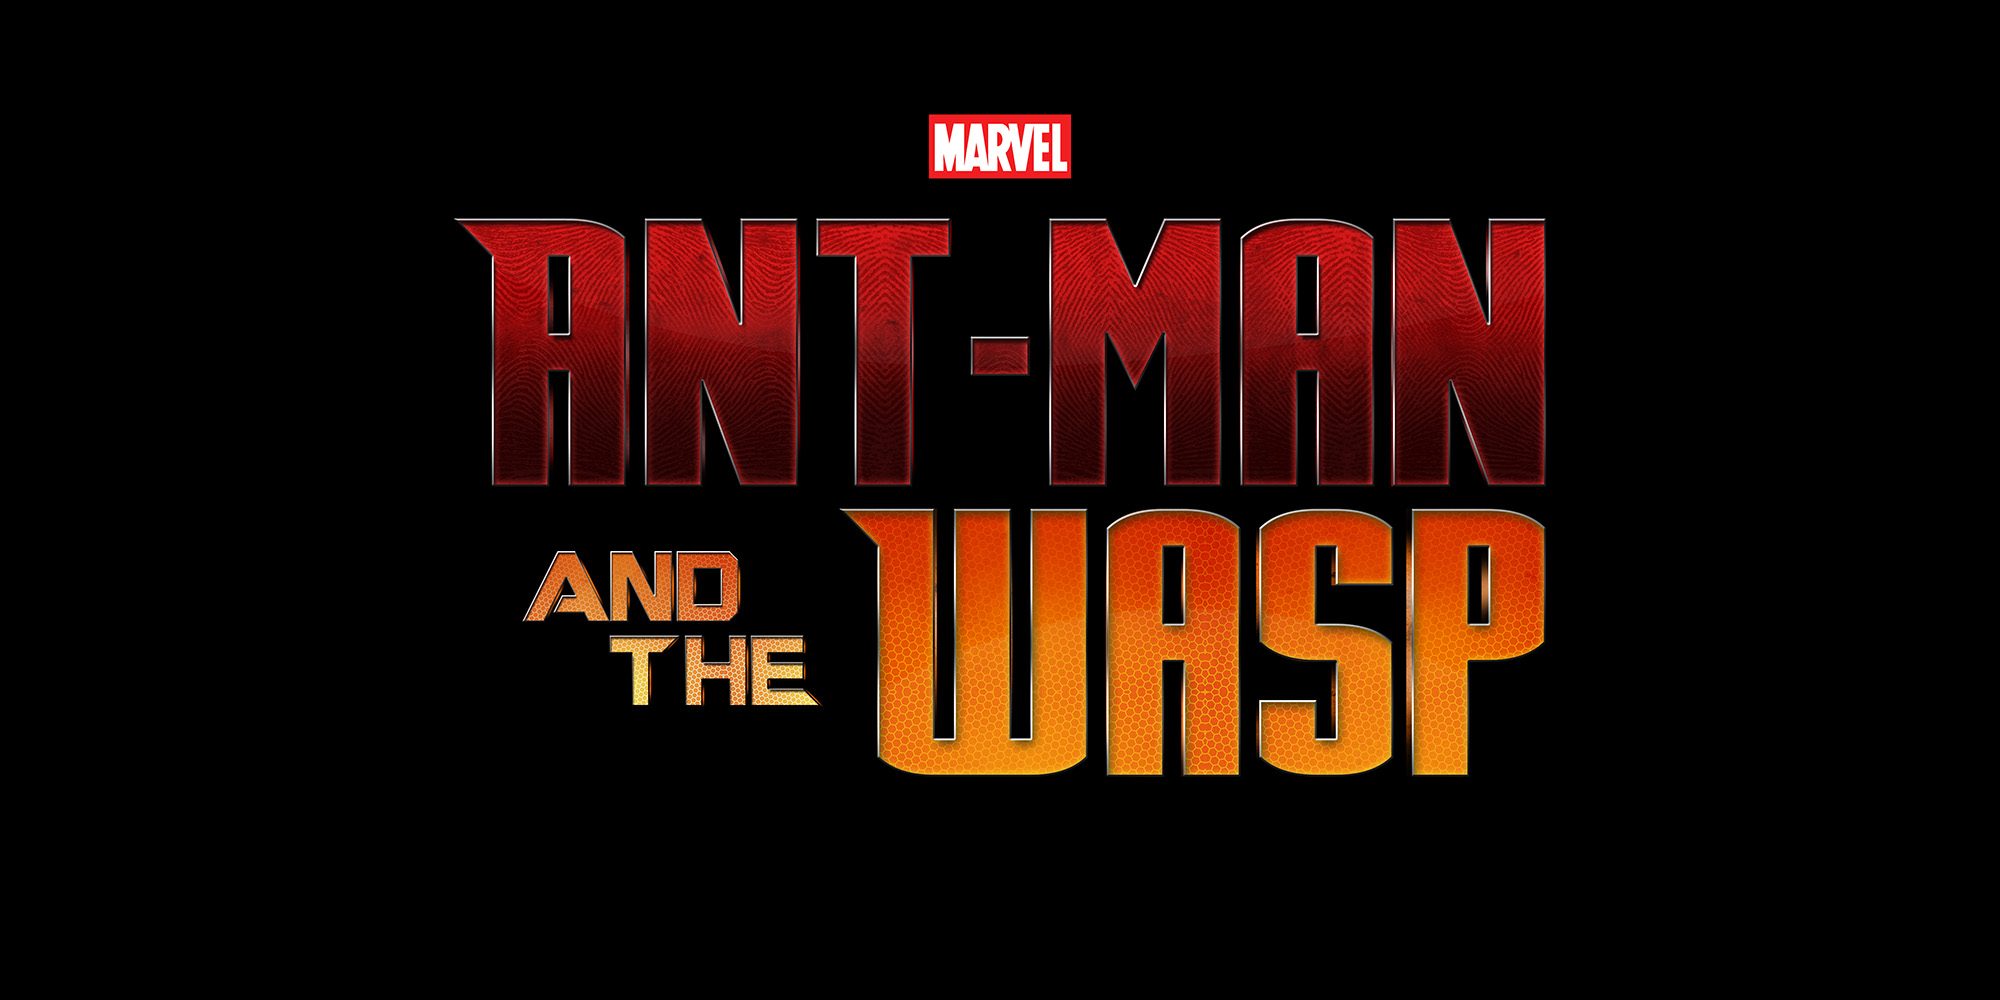 ant-man-and-the-wasp-logo-by-joe-steiner.jpg